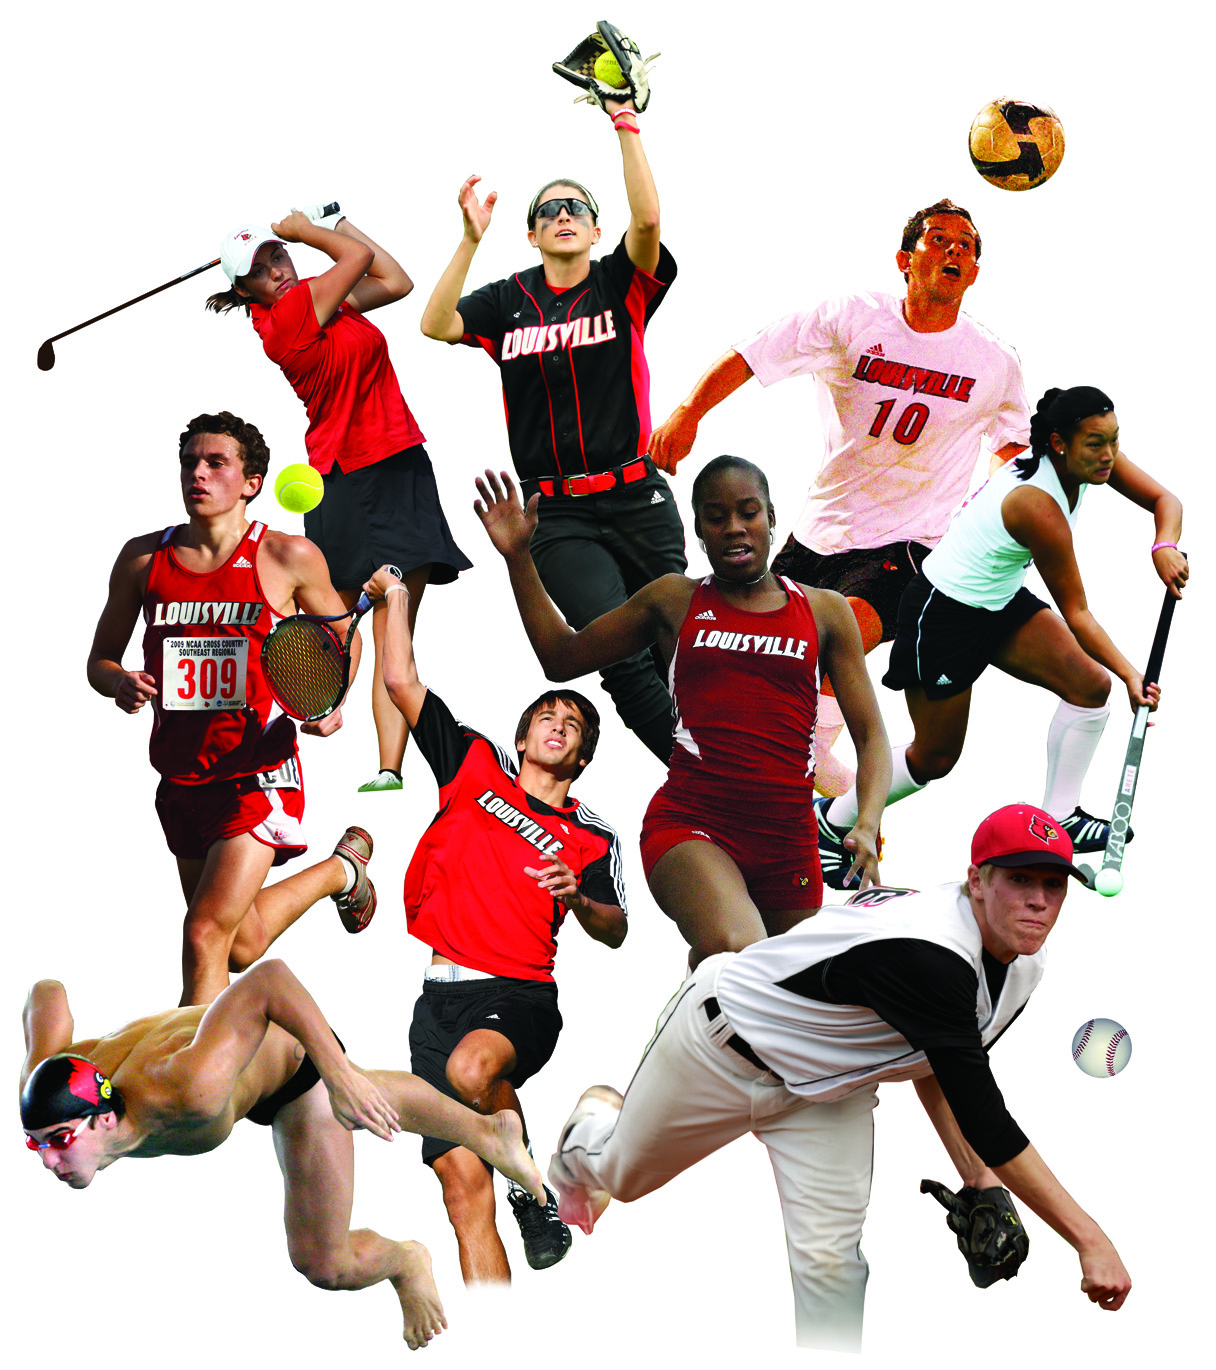 1216x1370 Images Of Sports Uofl Sports Traditions All Kinds Of Sports